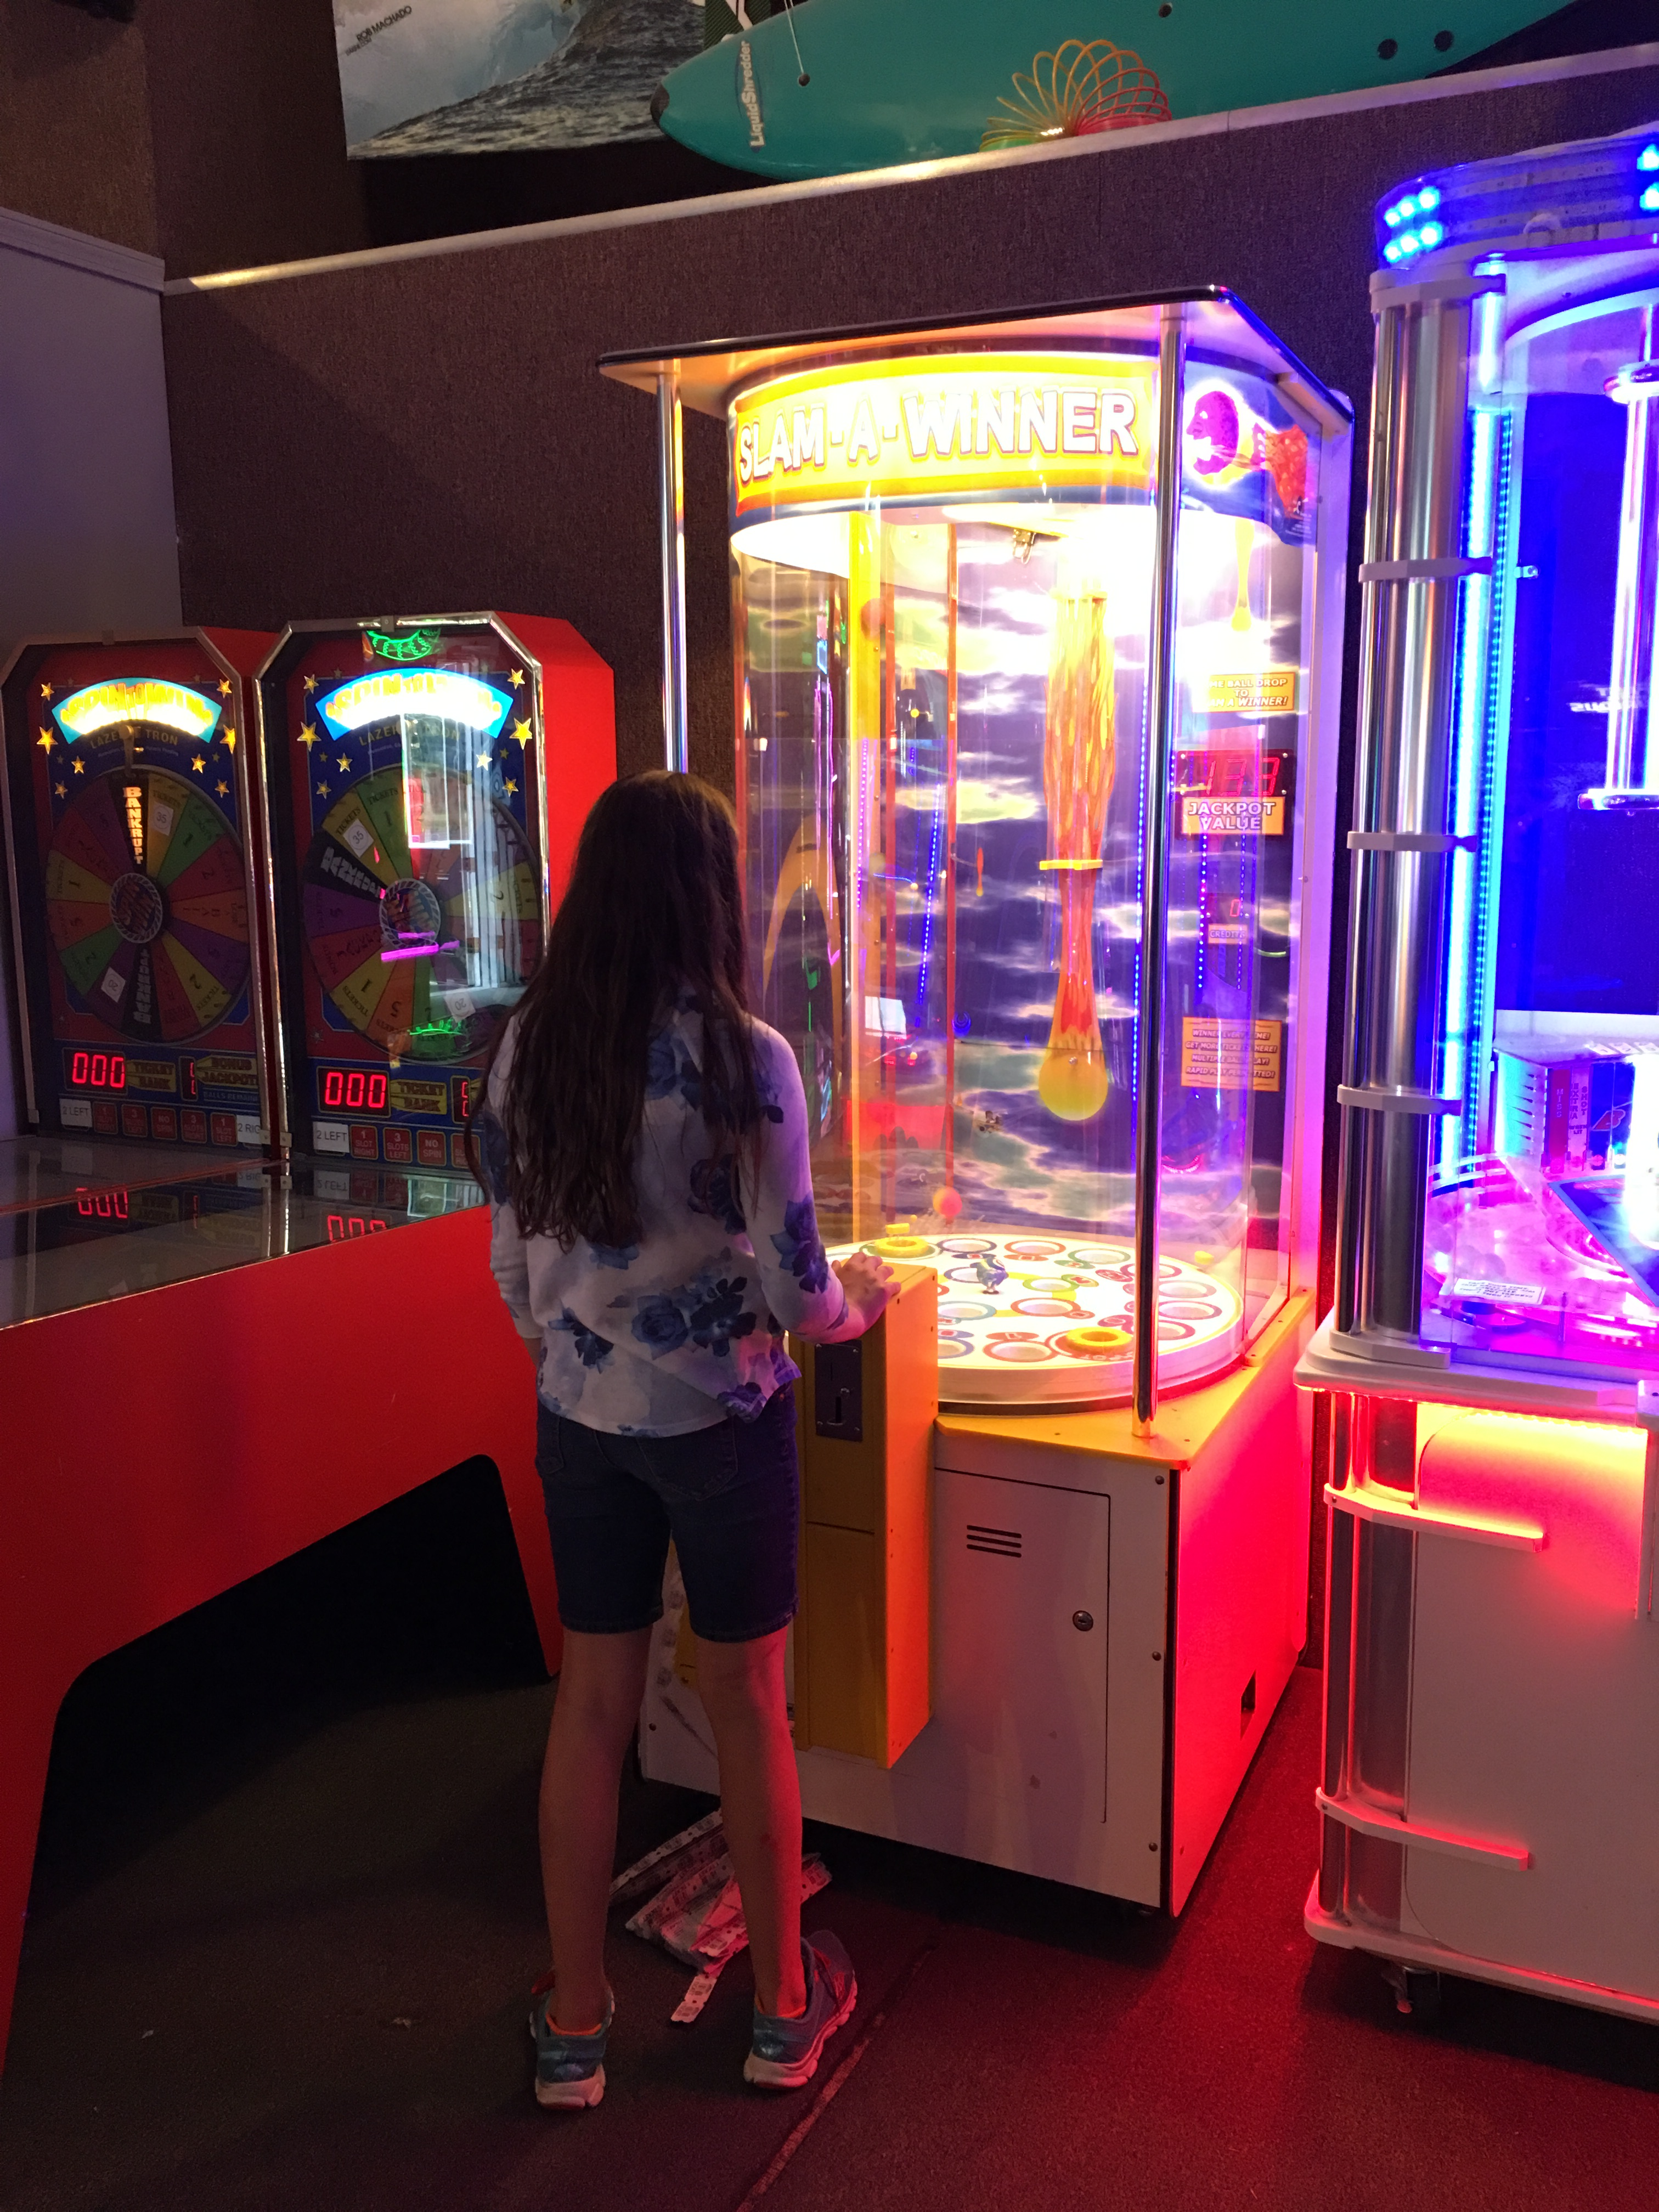 Best 11 Amusement Places Arcades in Springville, NY with